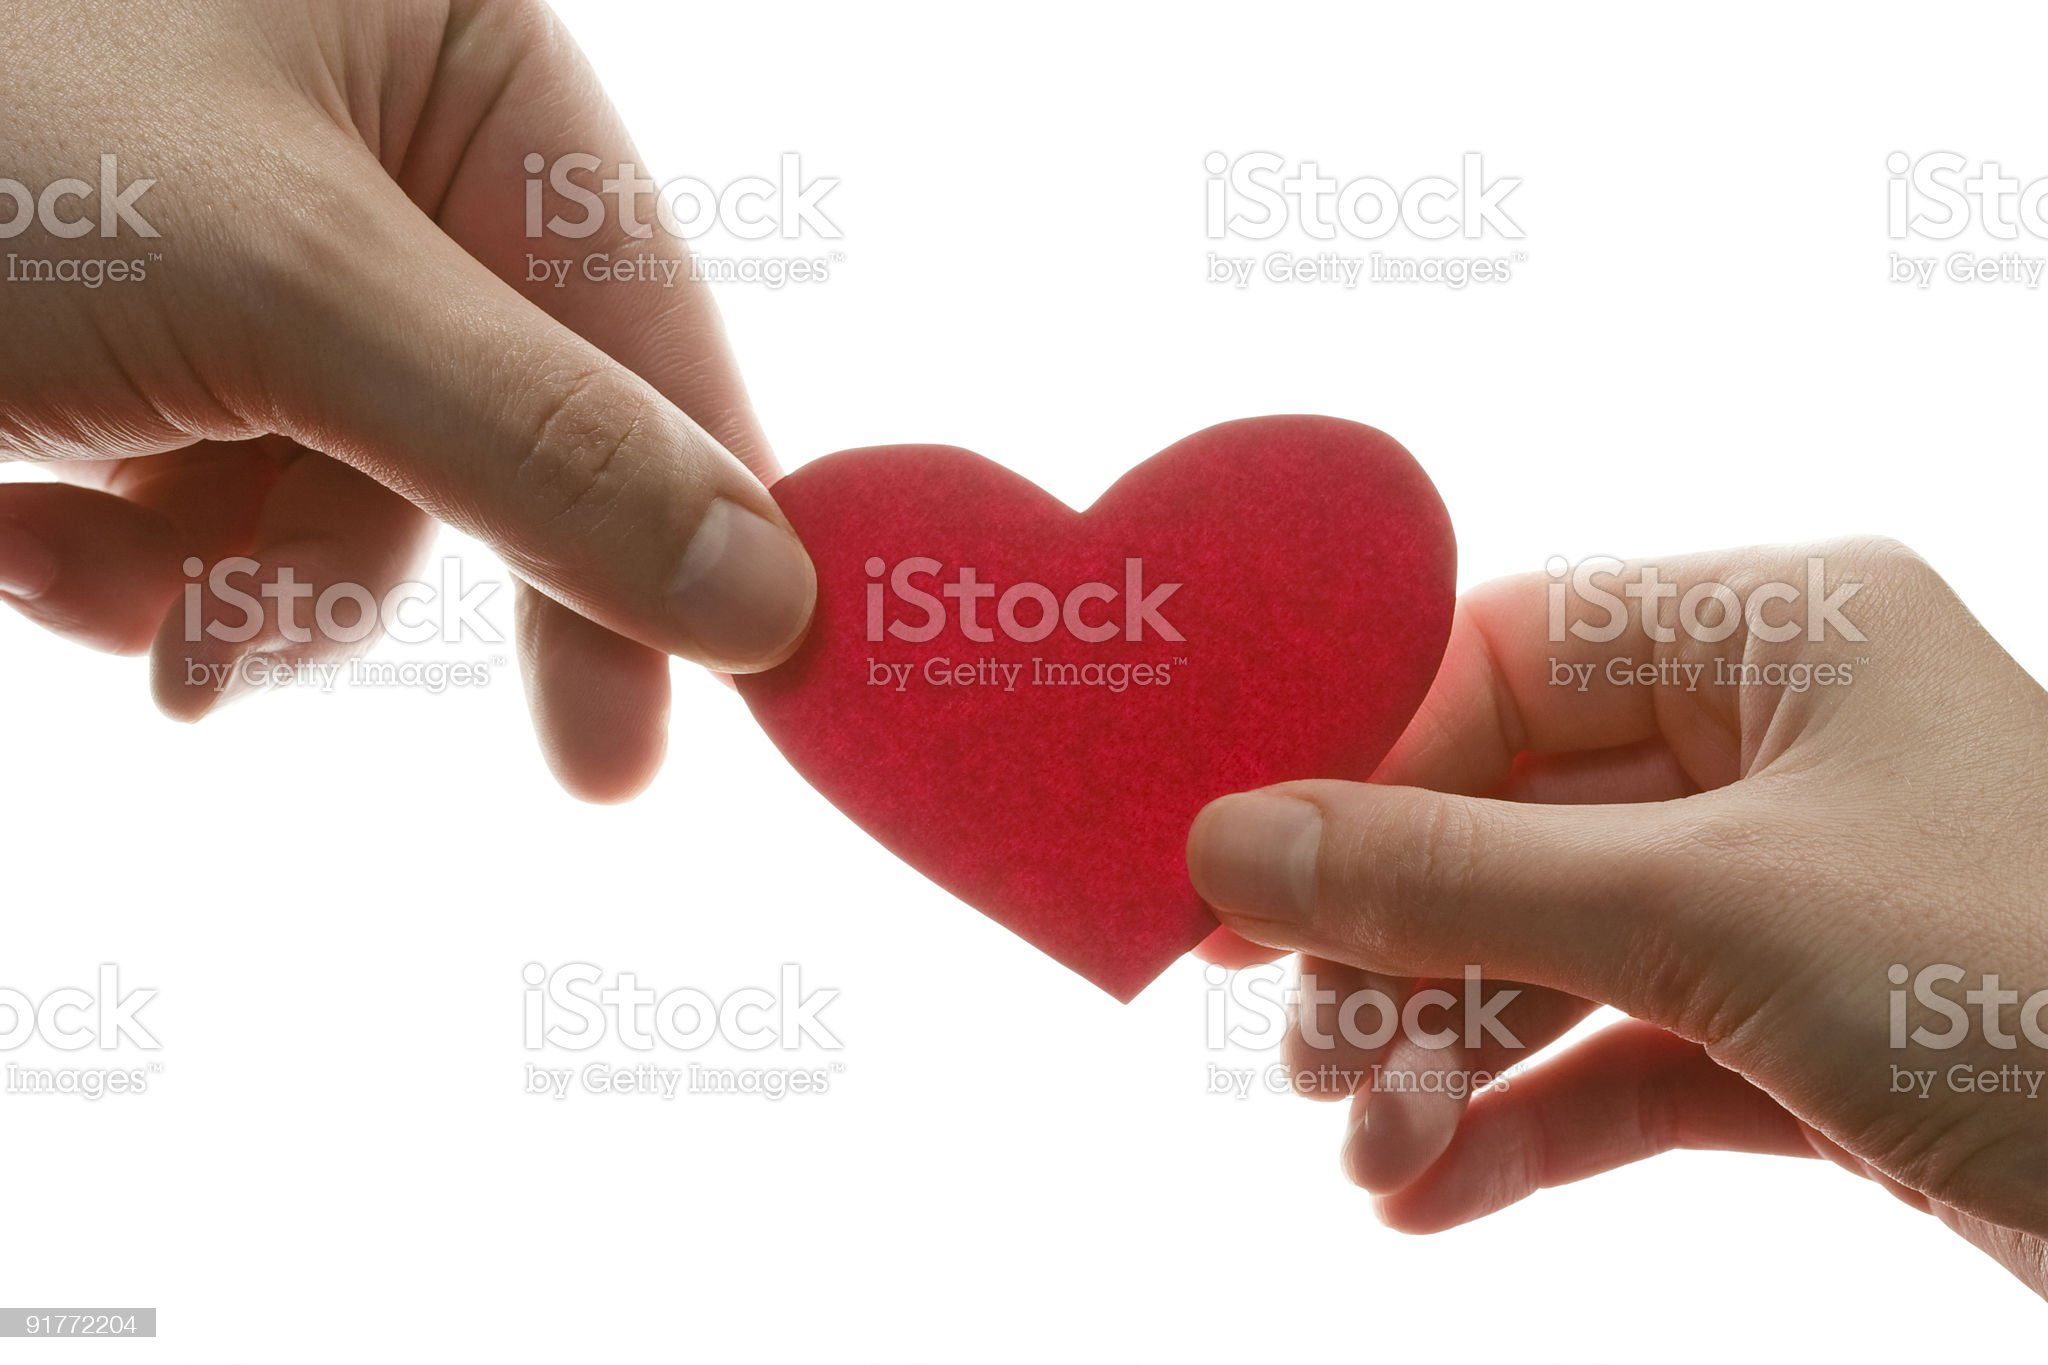 2 hands holding a red piece of paper shaped like a heart royalty-free stock photo